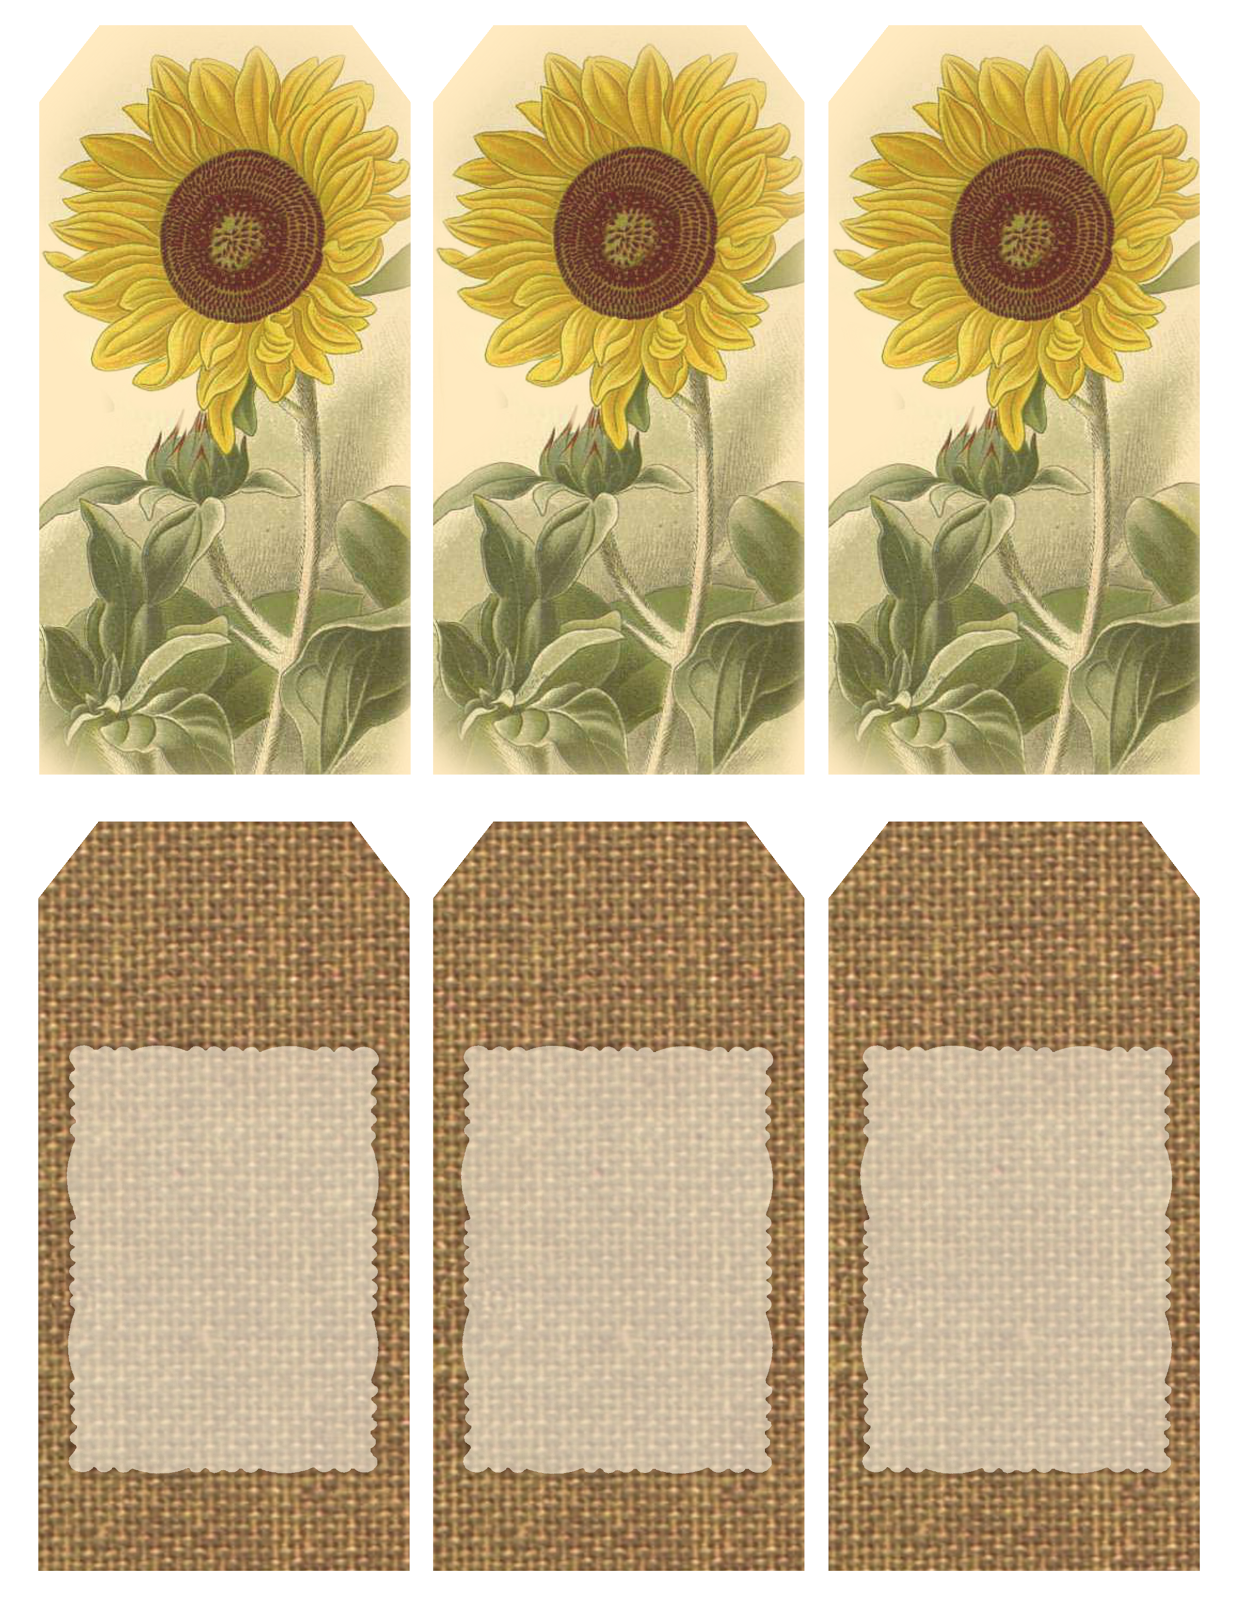 Those who bring sunshine printable sheet of 6 for Burlap flower template